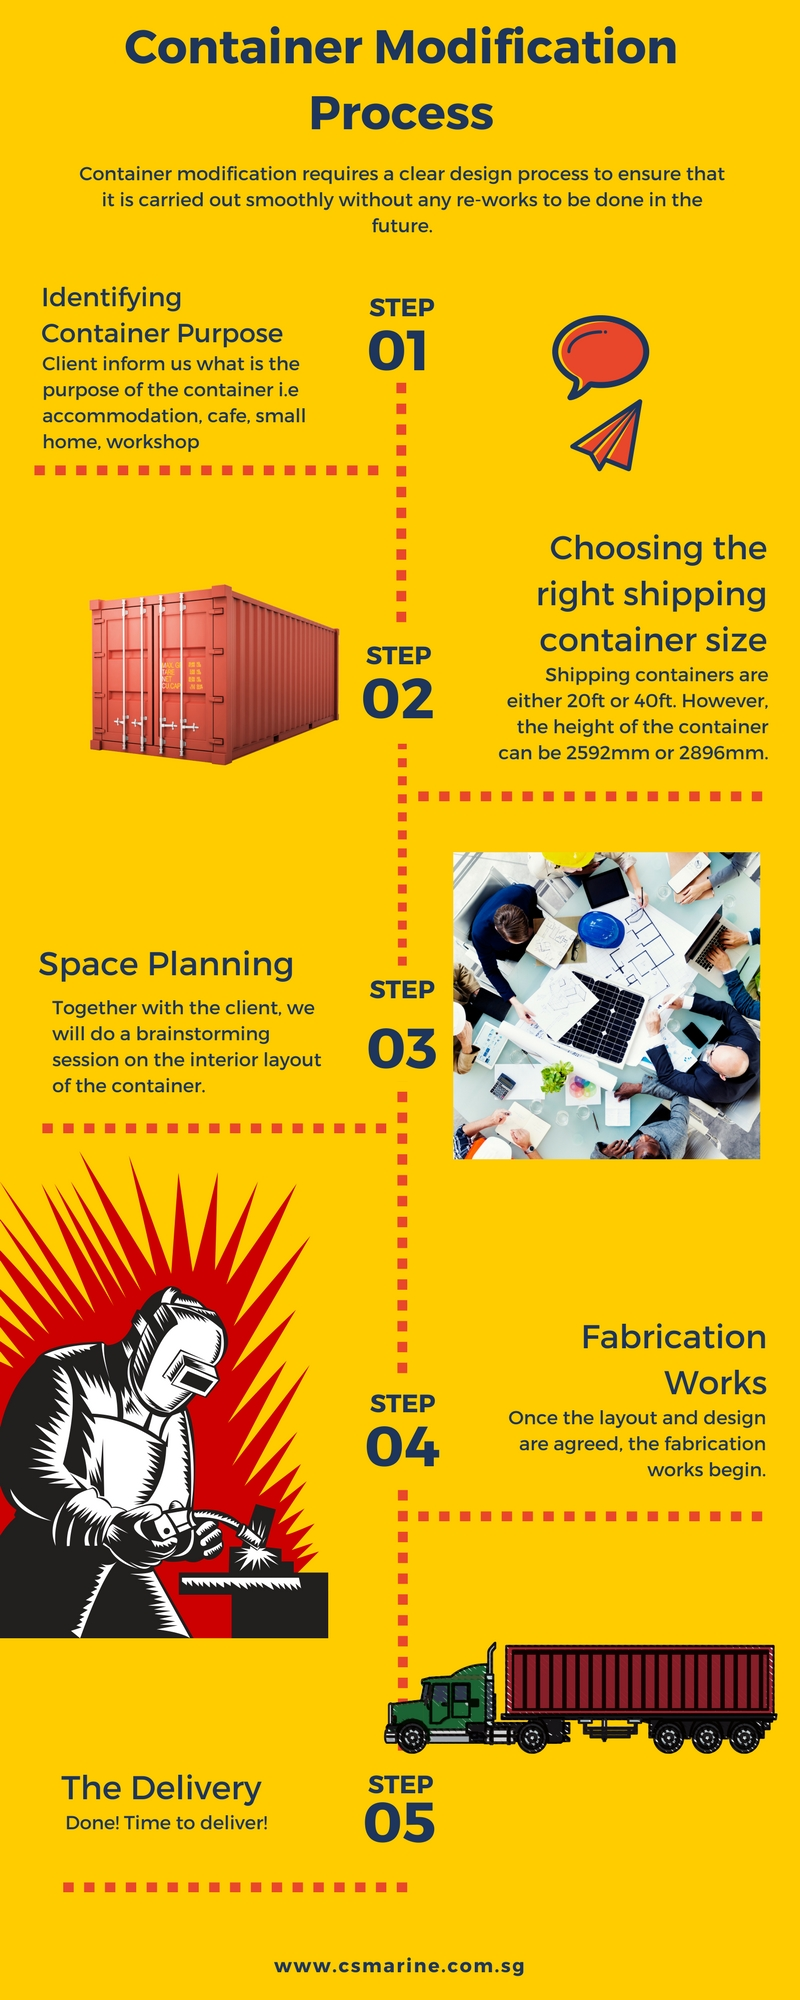 Container Modification Process